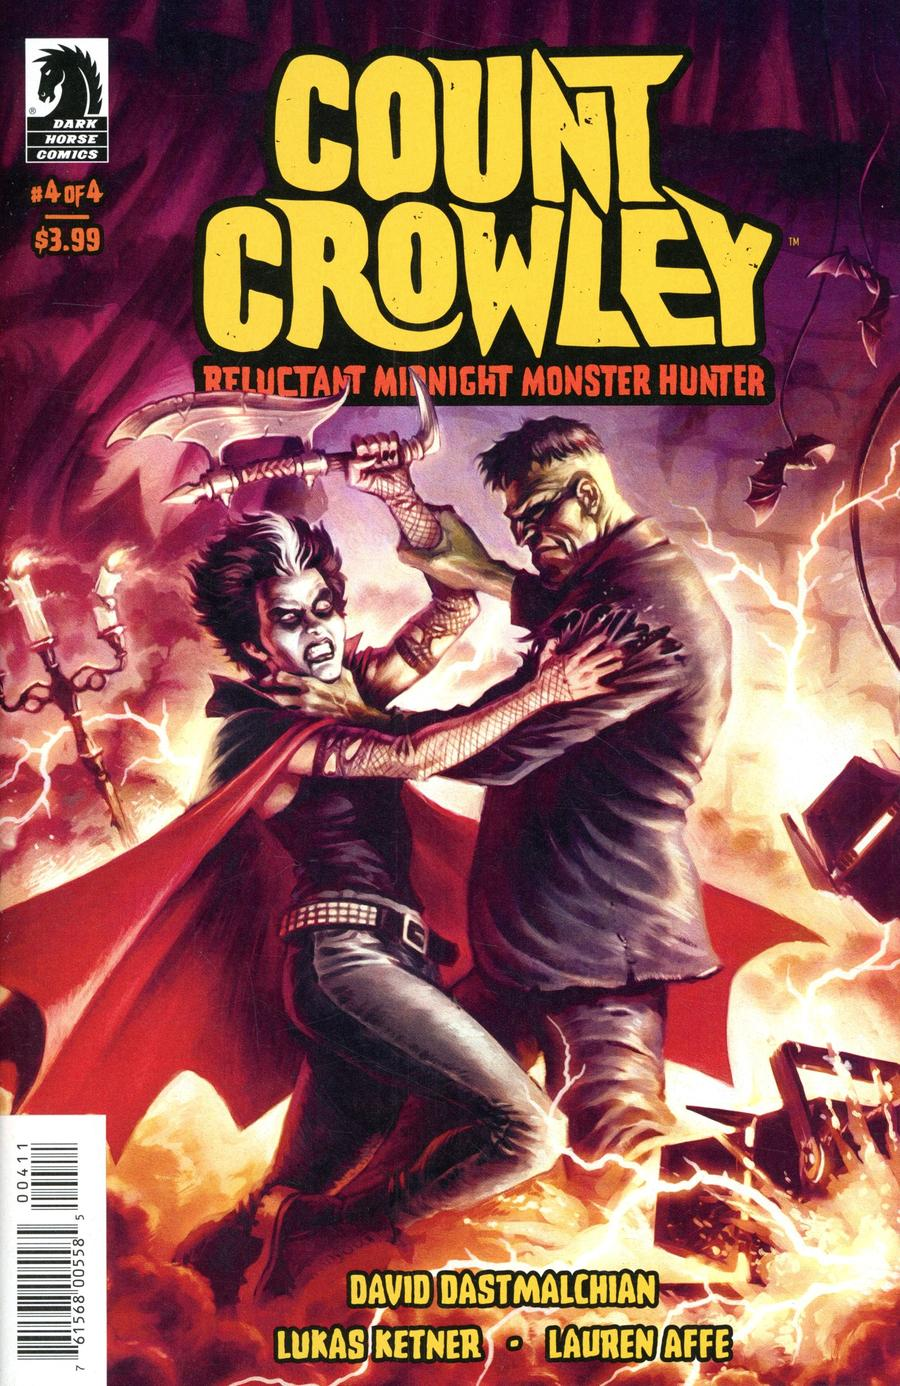 Count Crowley Reluctant Midnight Monster Hunter #4